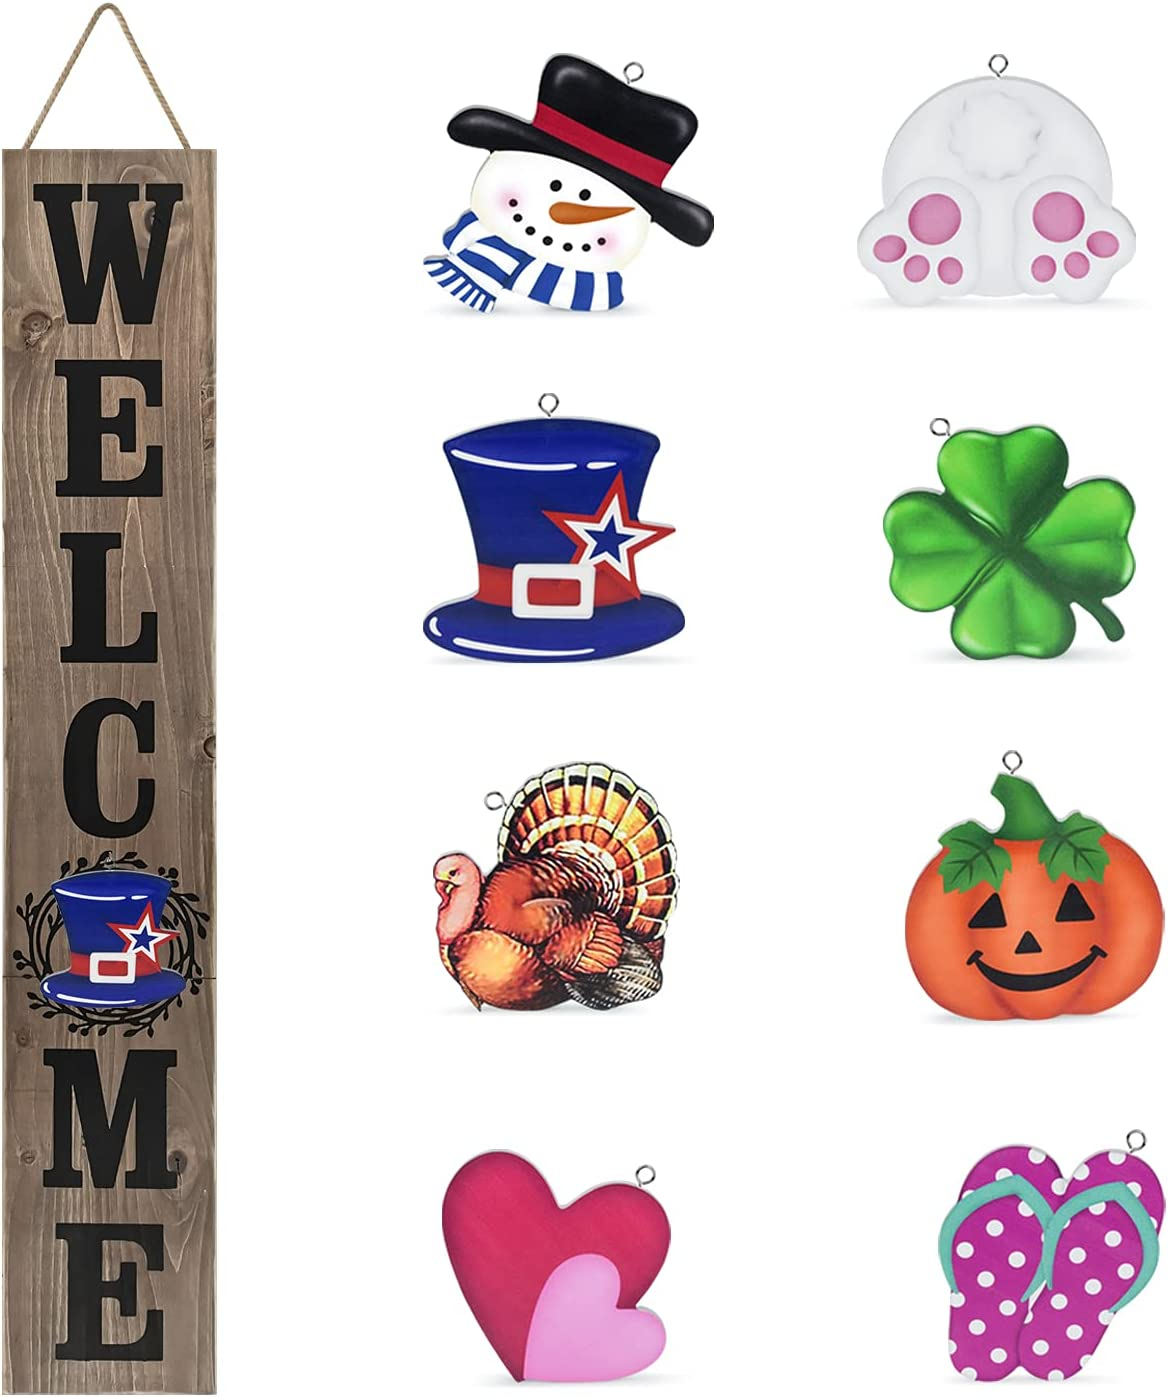 Winder Welcome Sign for Front Door Porch Farmhouse Outdoor Indoor Rustic Interchangeable Vertical Wall Decor Wooden Hanging Accessories Home Decorations